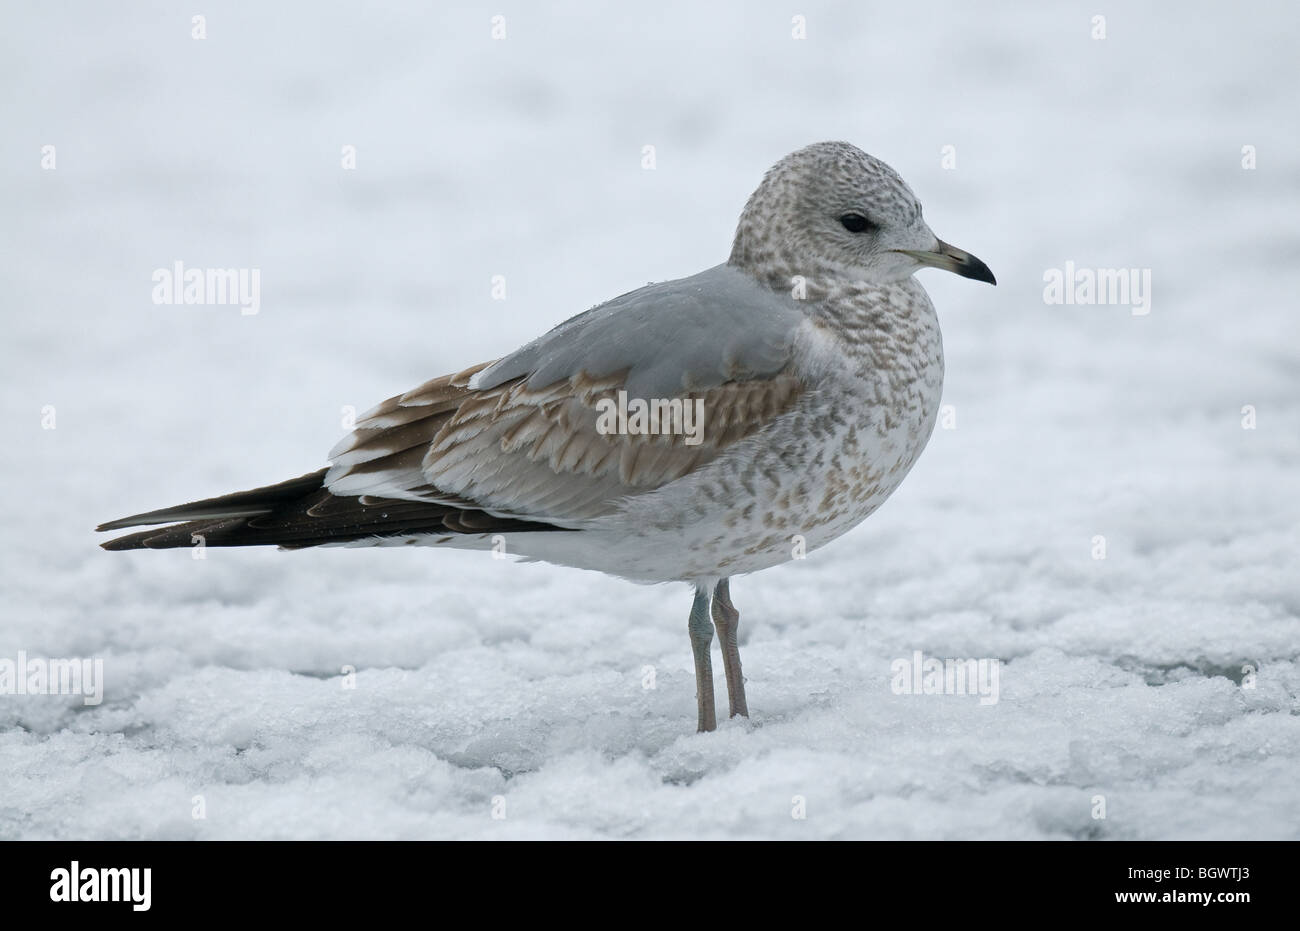 Common Gull in snow - Stock Image